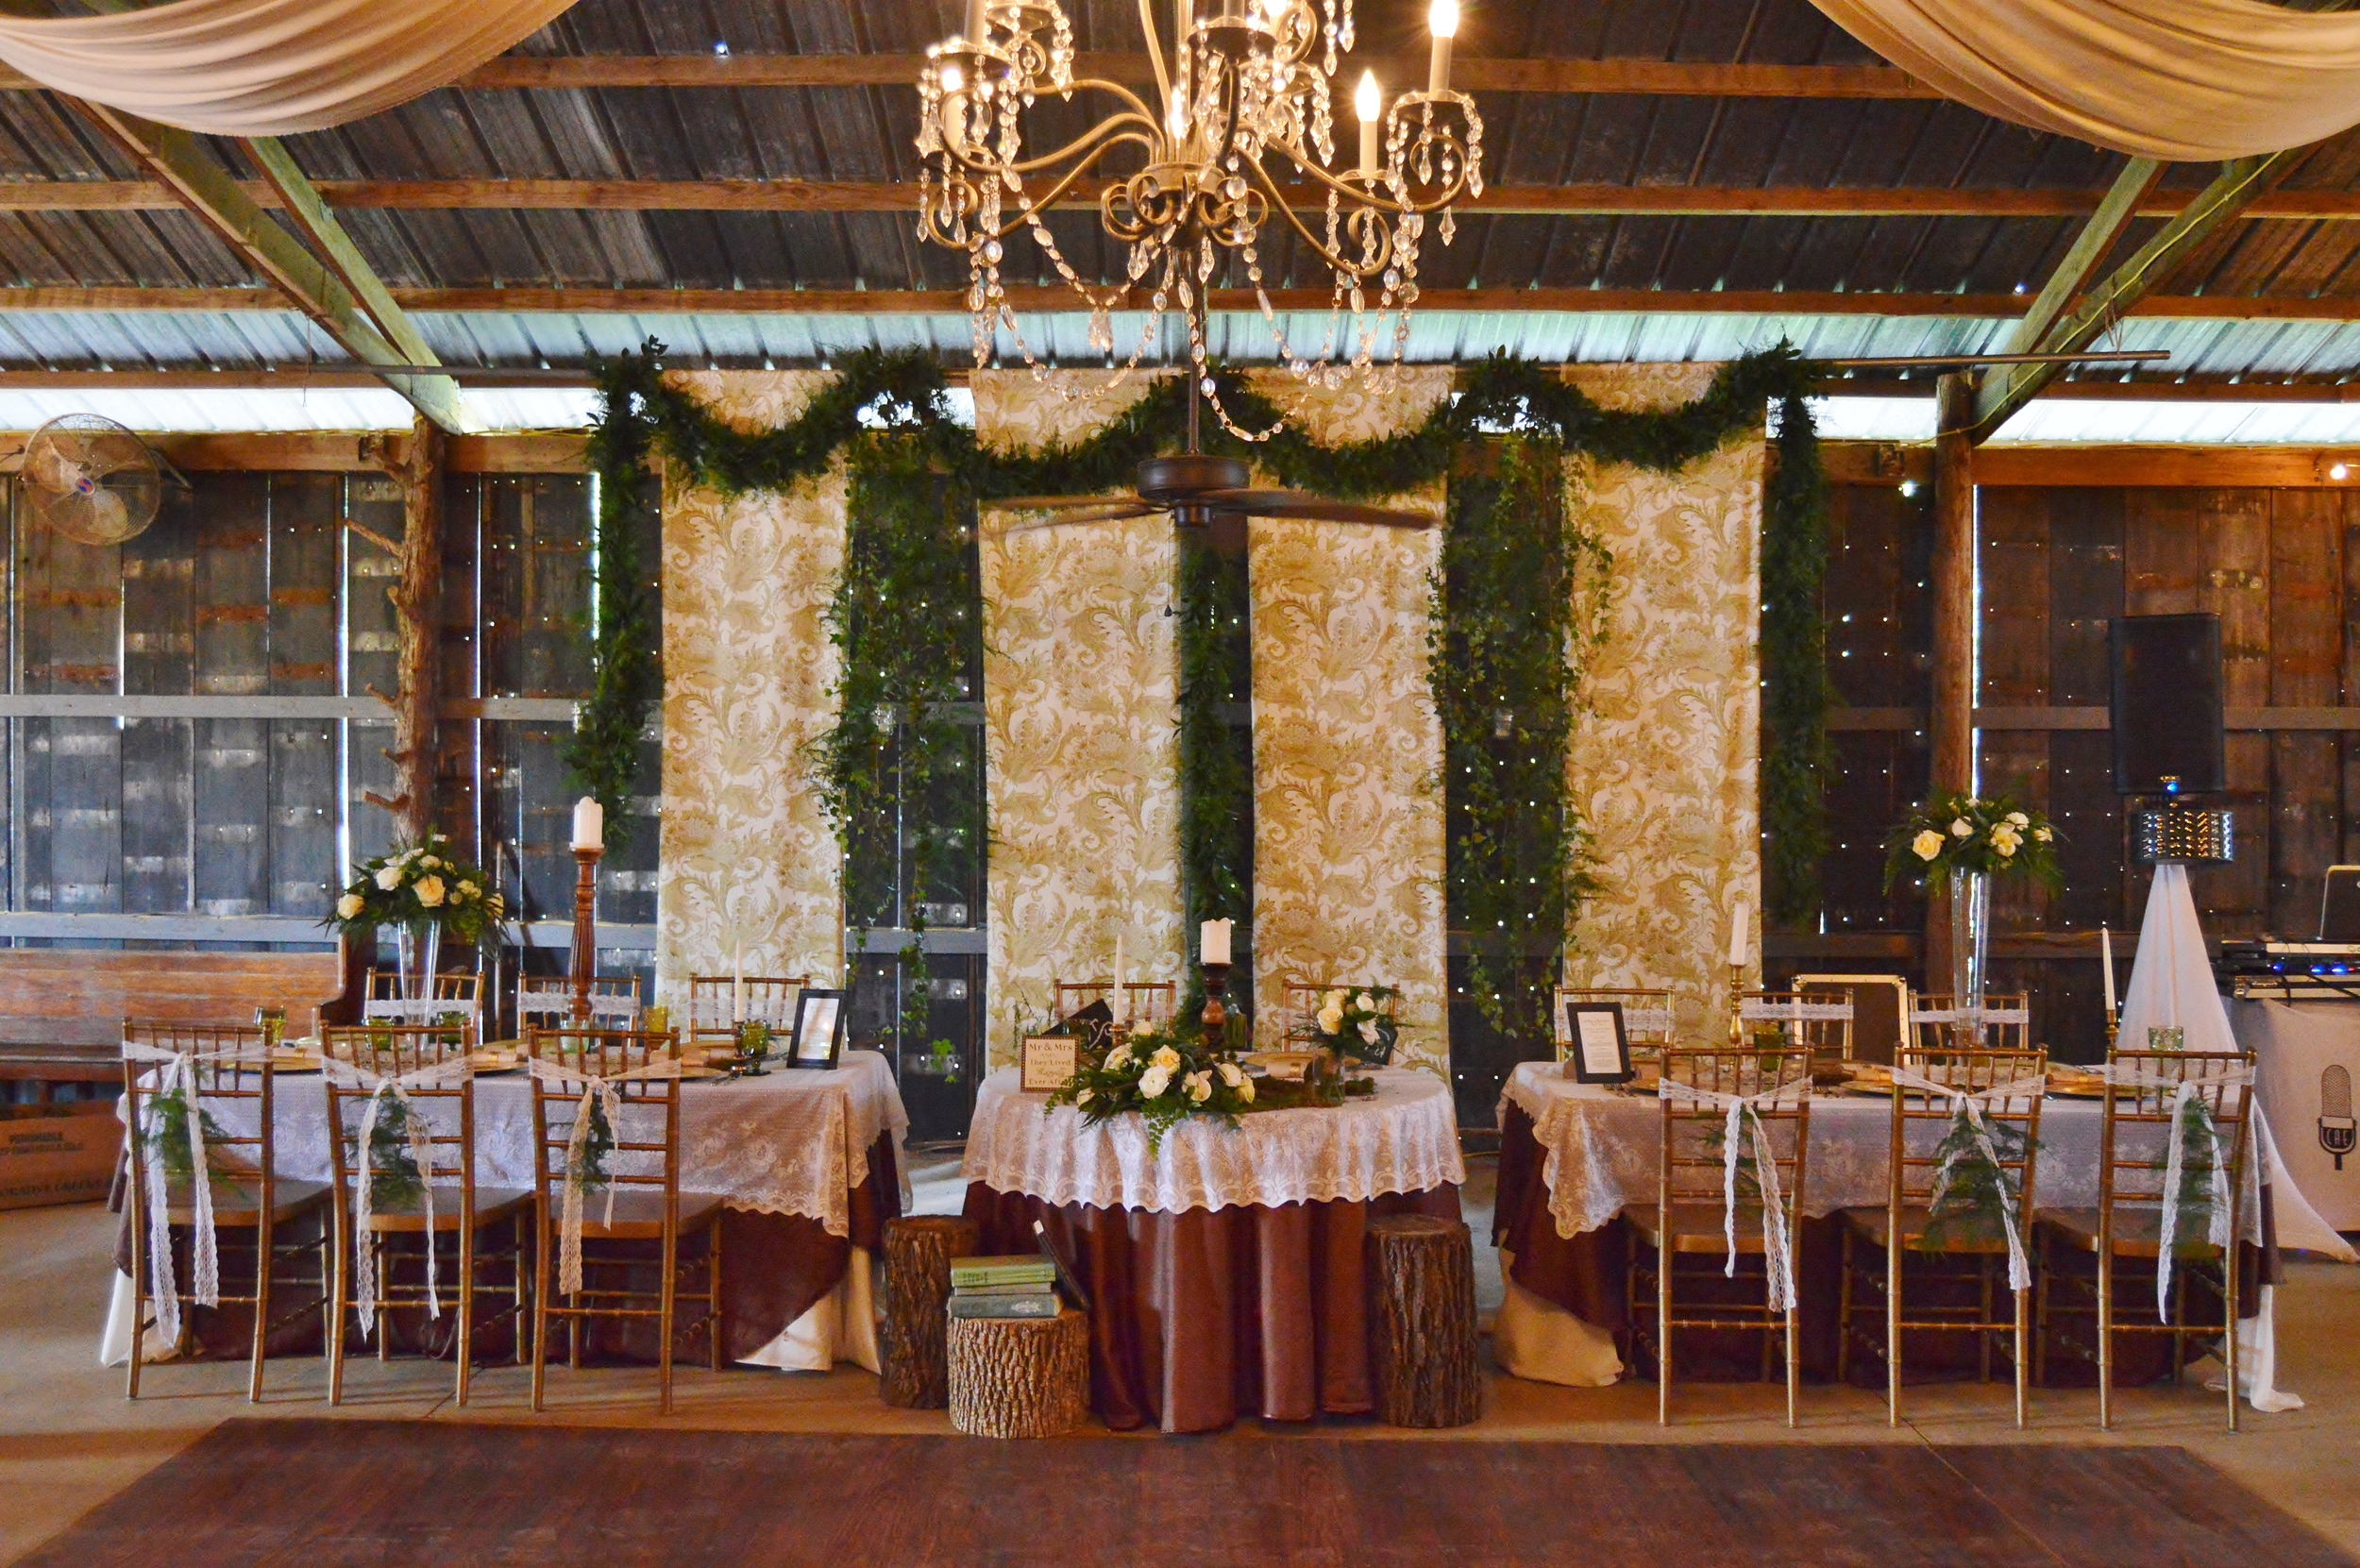 These two had a sweetheart table, with two additional tables for their wedding party. I love this idea!